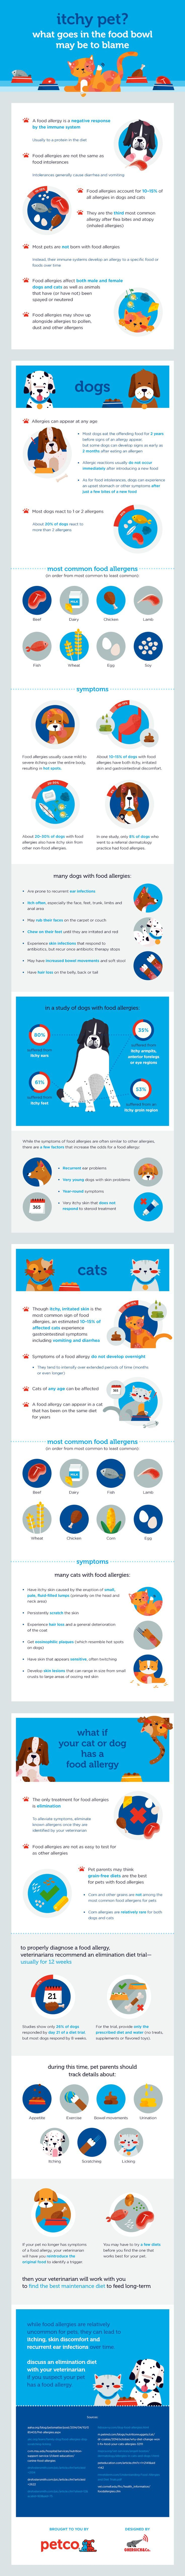 Food allergies account for 10–15% of all allergies in dogs and cats.  Learn about symptoms, the most common food allergens, and what to do if your dog or cat has a food allergy using the infographic below.  tips to keep your dog healthy and happy.